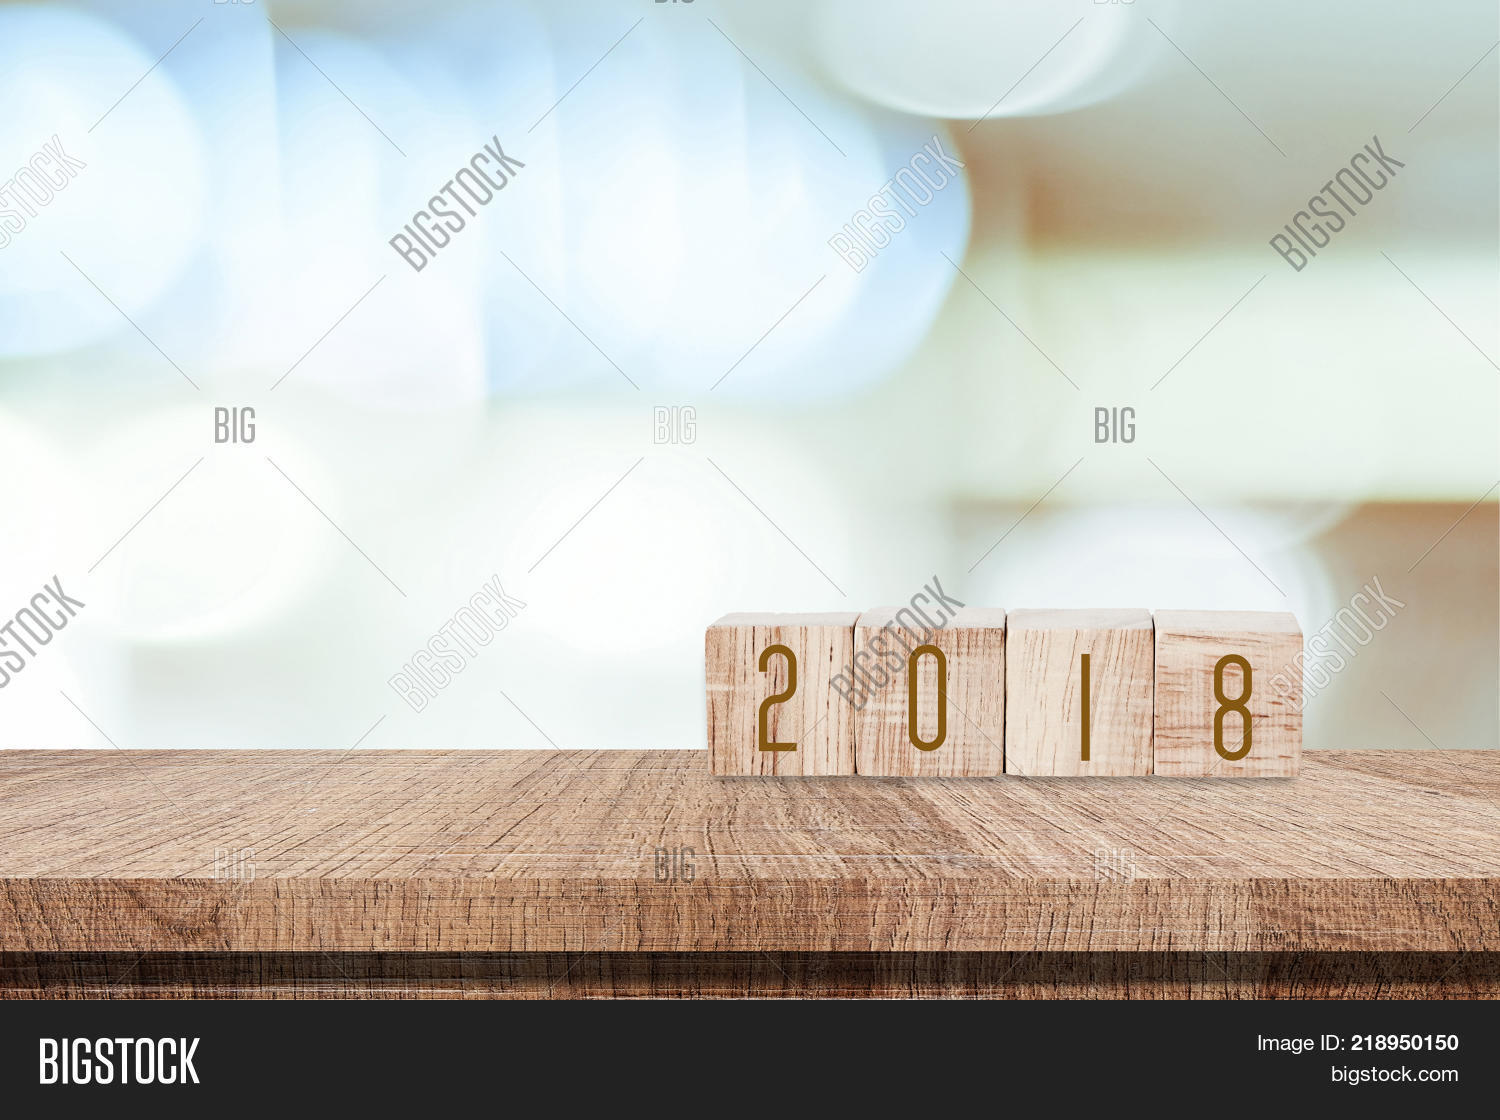 2018 New Year Greeting Image & Photo (Free Trial) | Bigstock